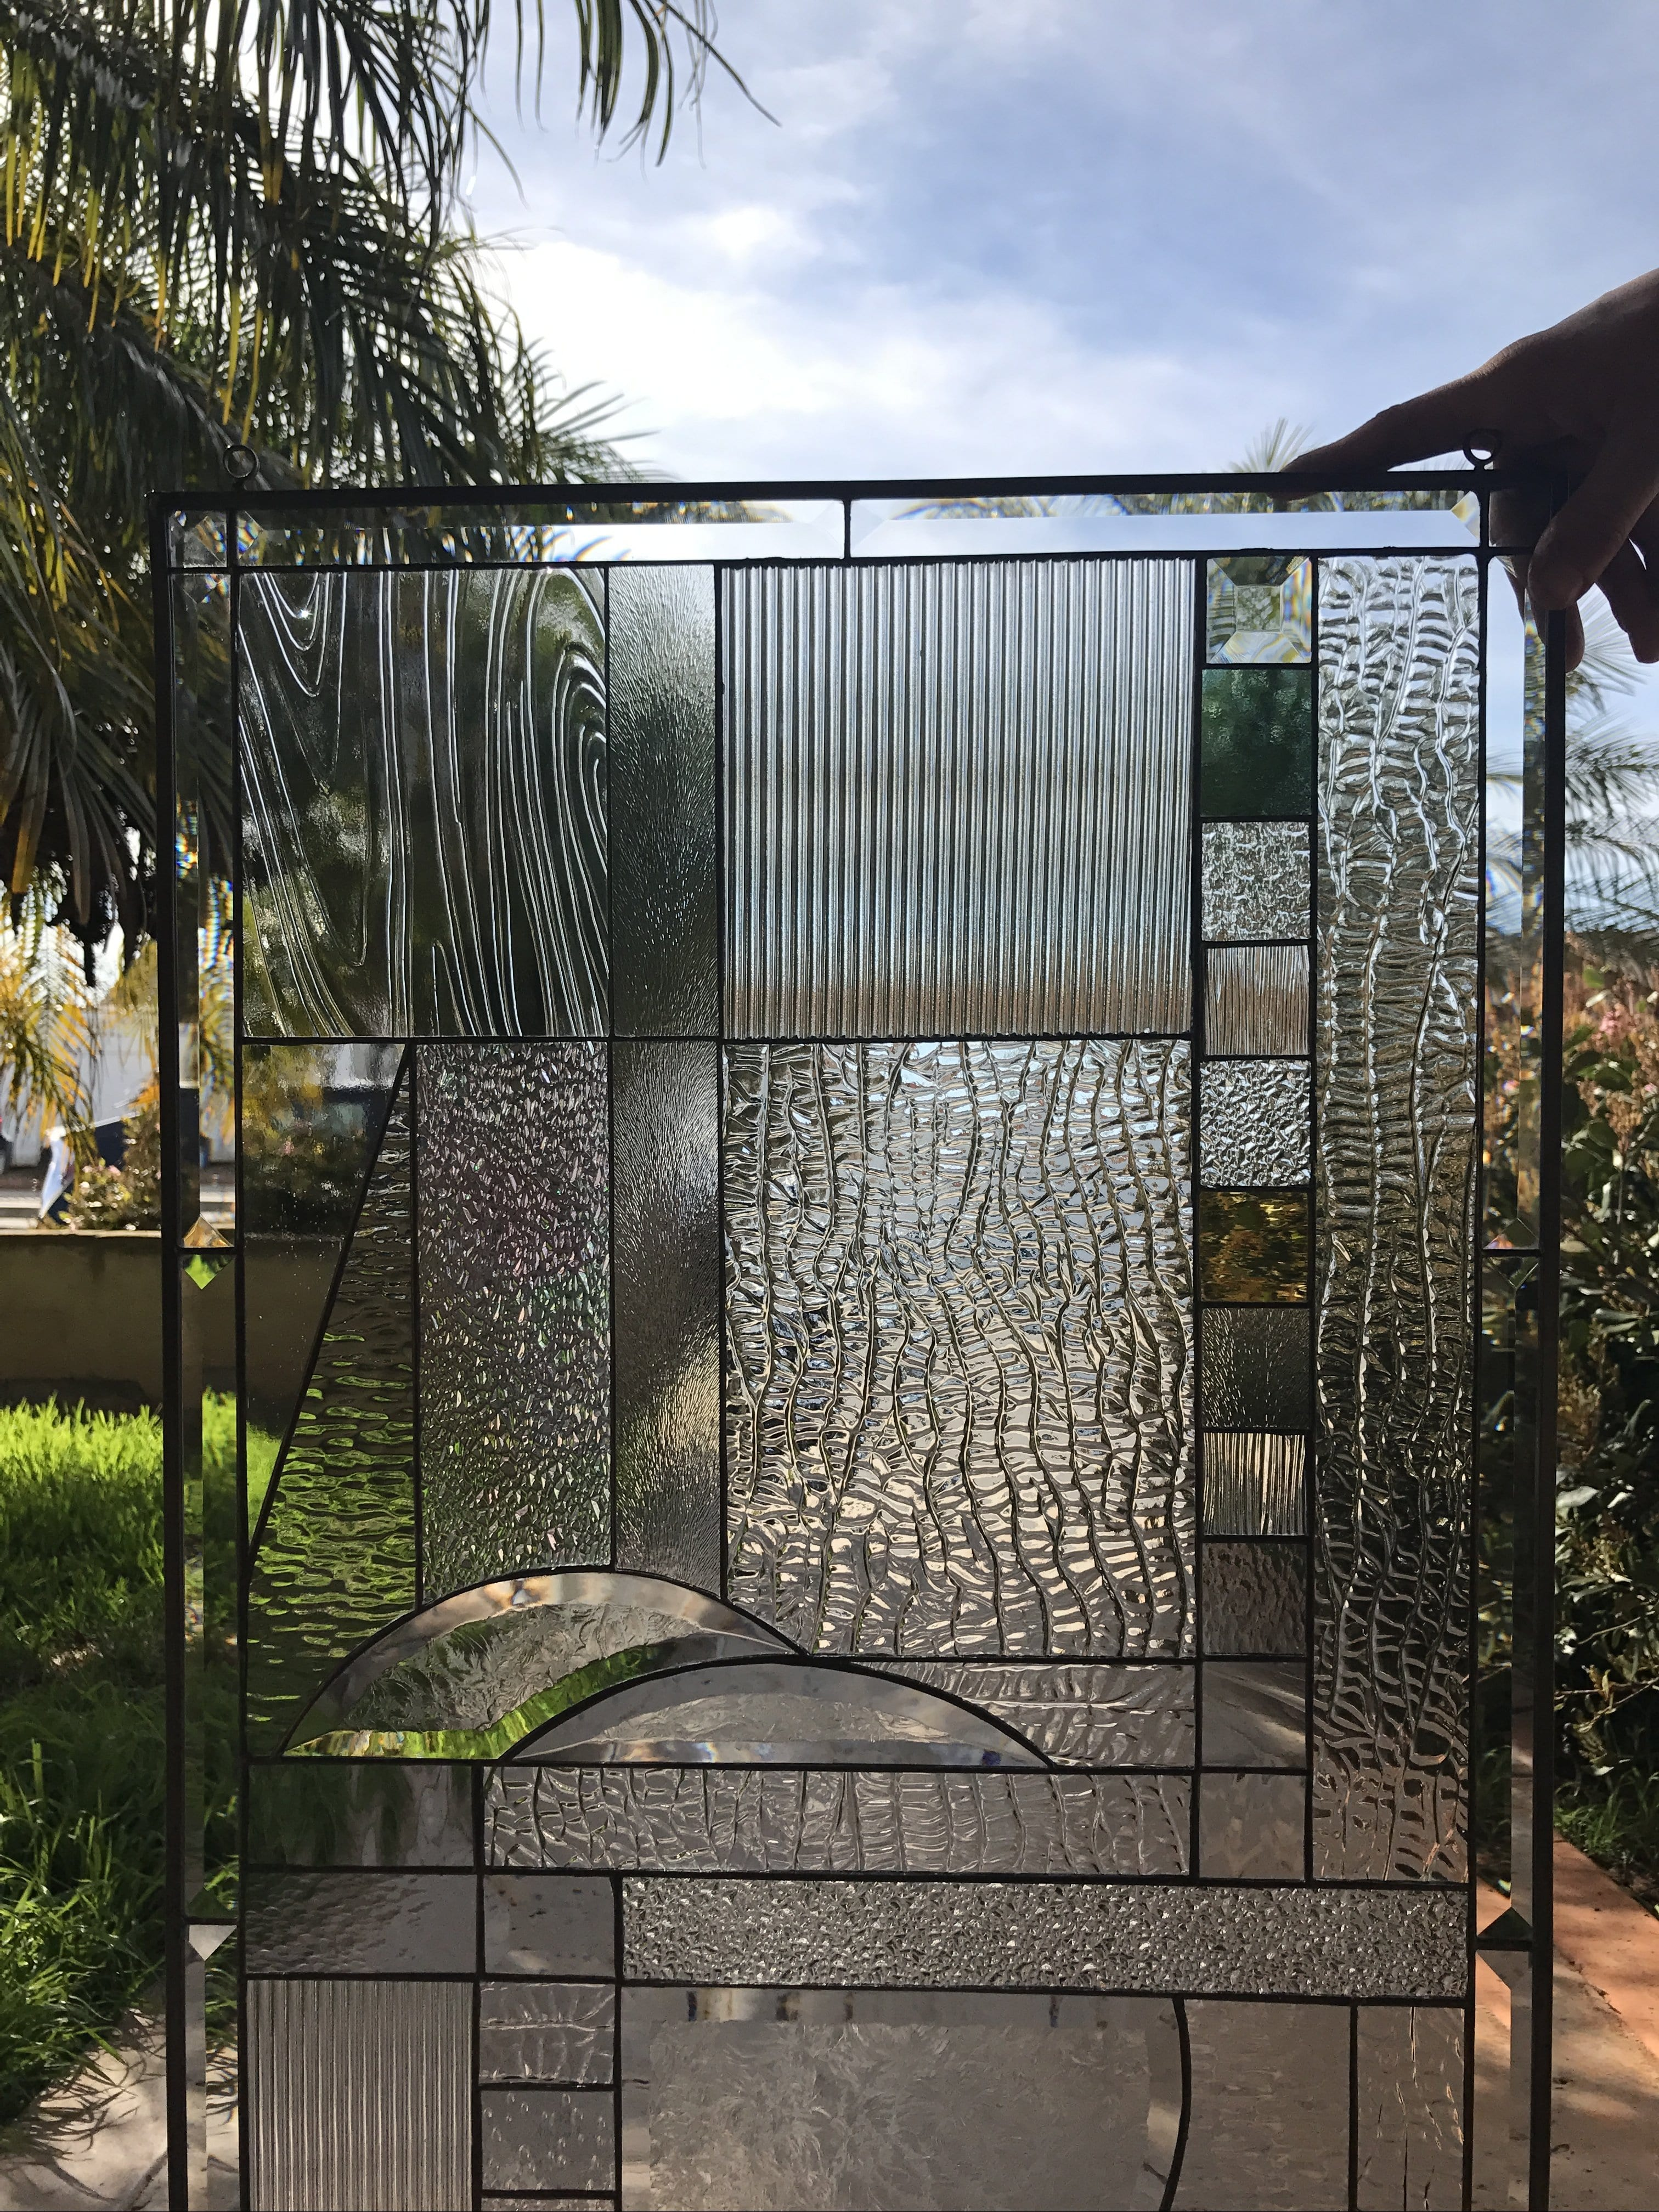 The Quot Palos Verdes Quot All Clear Beveled Glass Mission Prairie